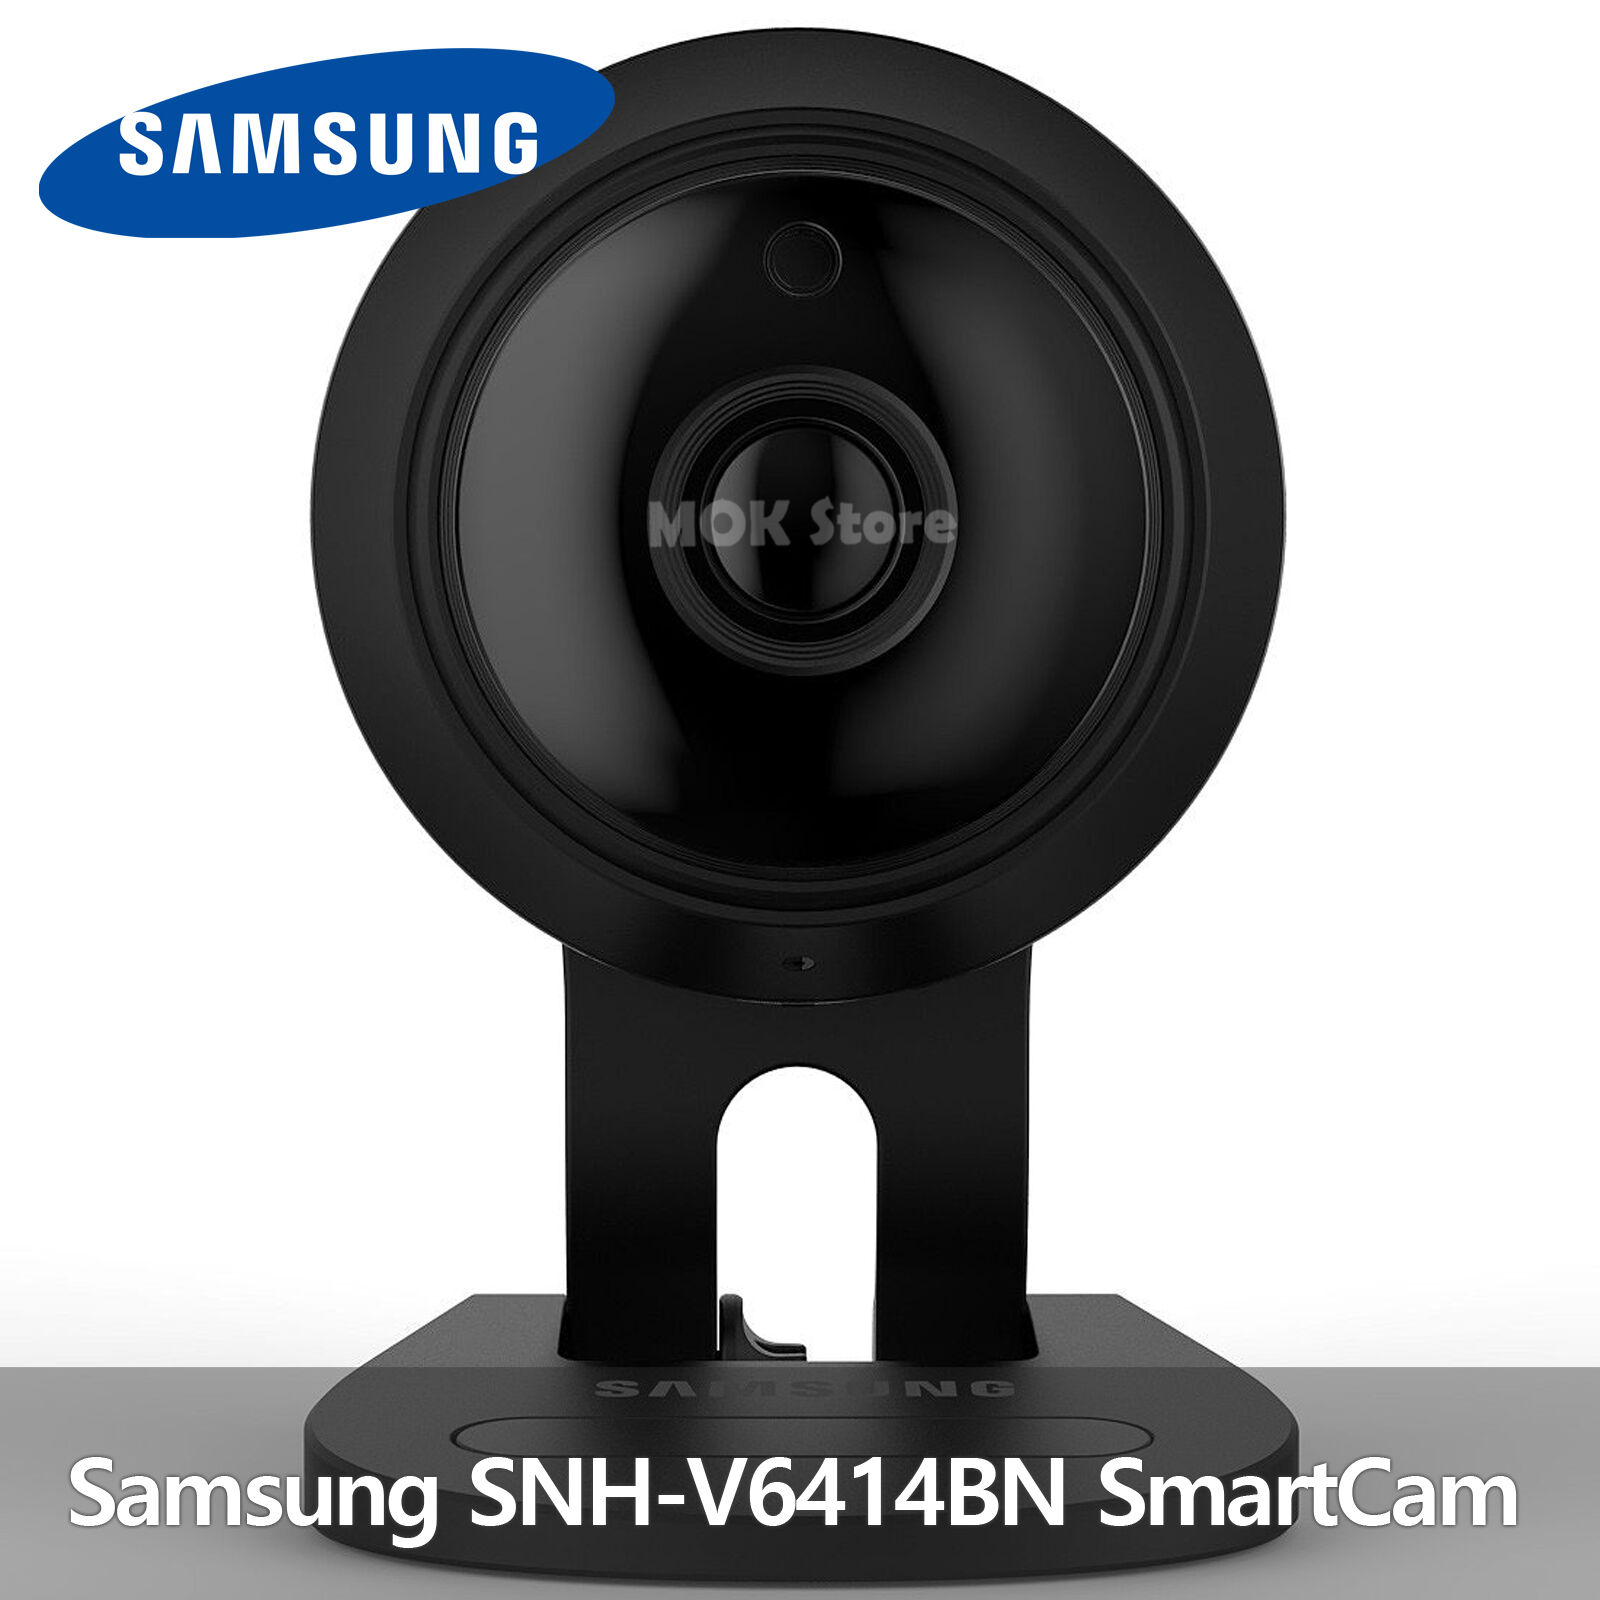 Details about Samsung SNH-V6414BN SmartCam HD Plus 1080p Wi-Fi IP  Monitoring Security Camera